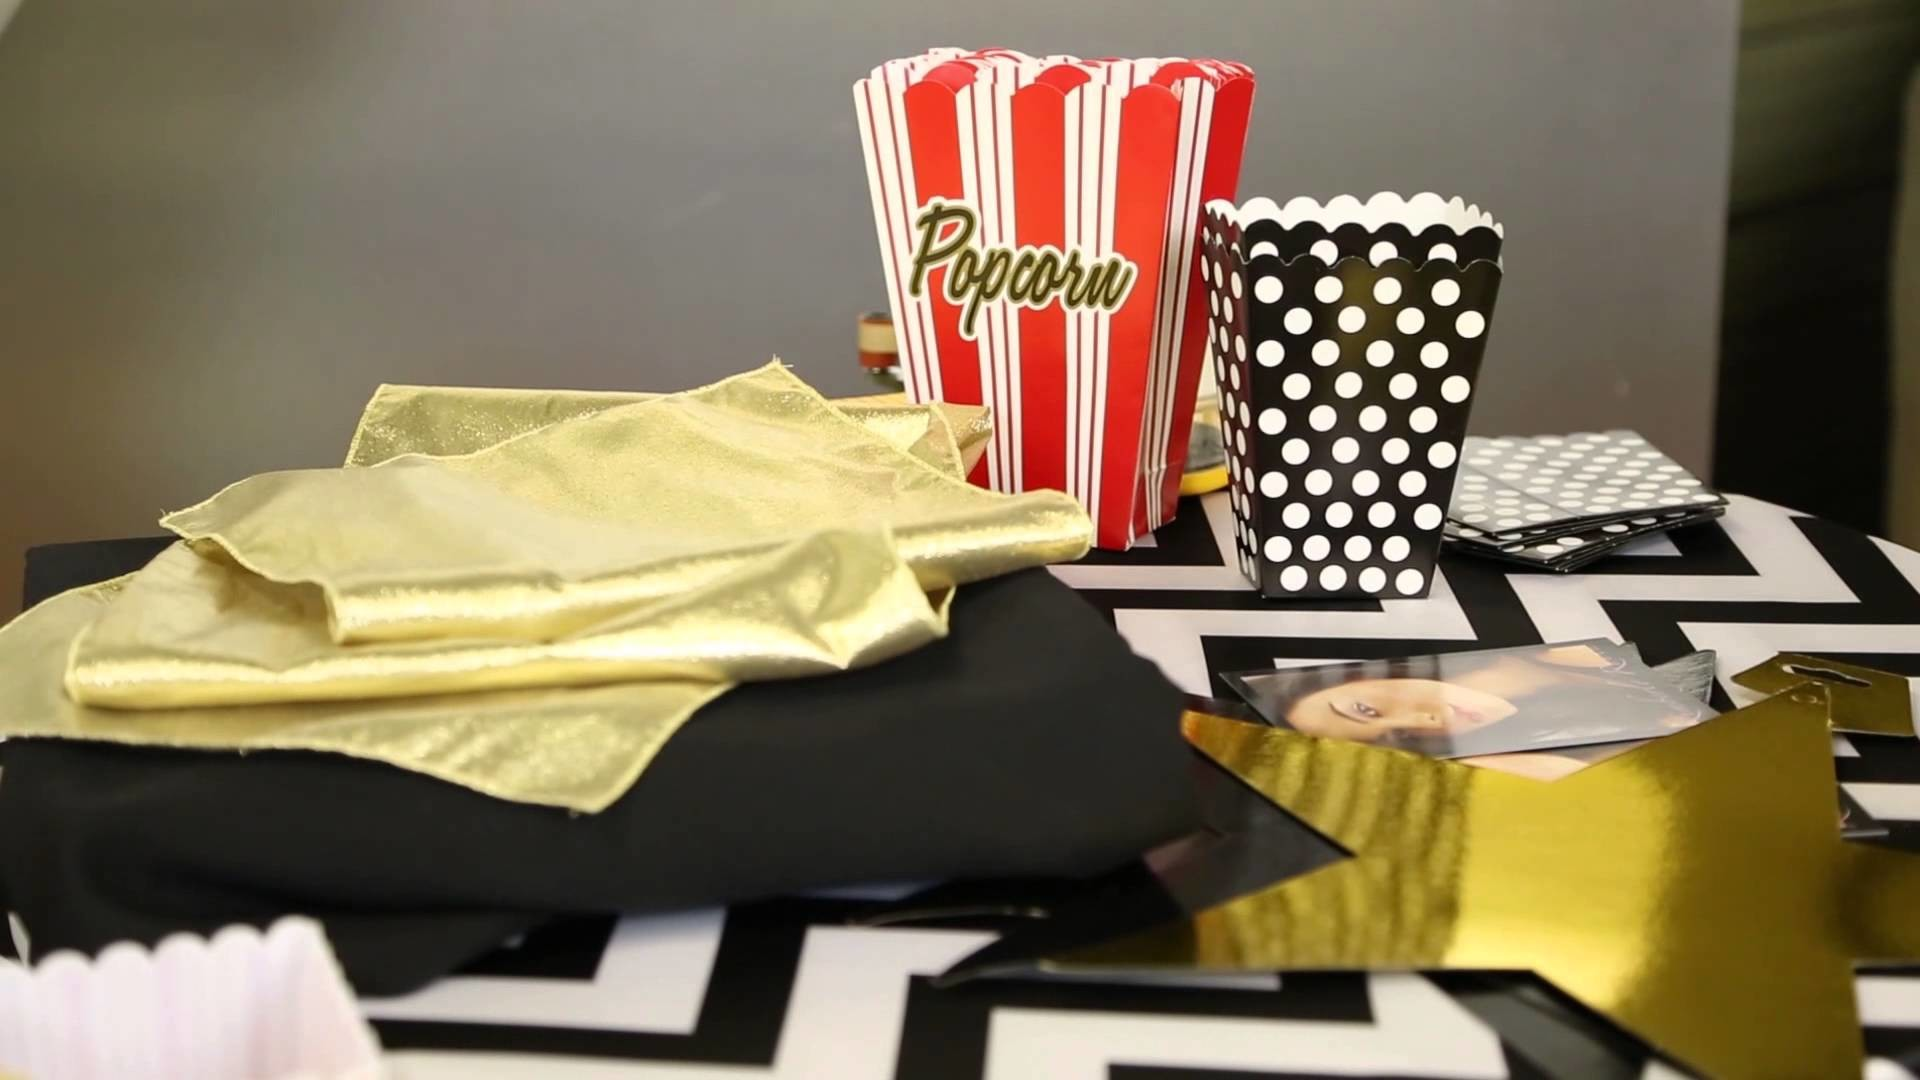 How to Throw a Hollywood Birthday Party for a Tween : Decor for Birthdays & Other Parties